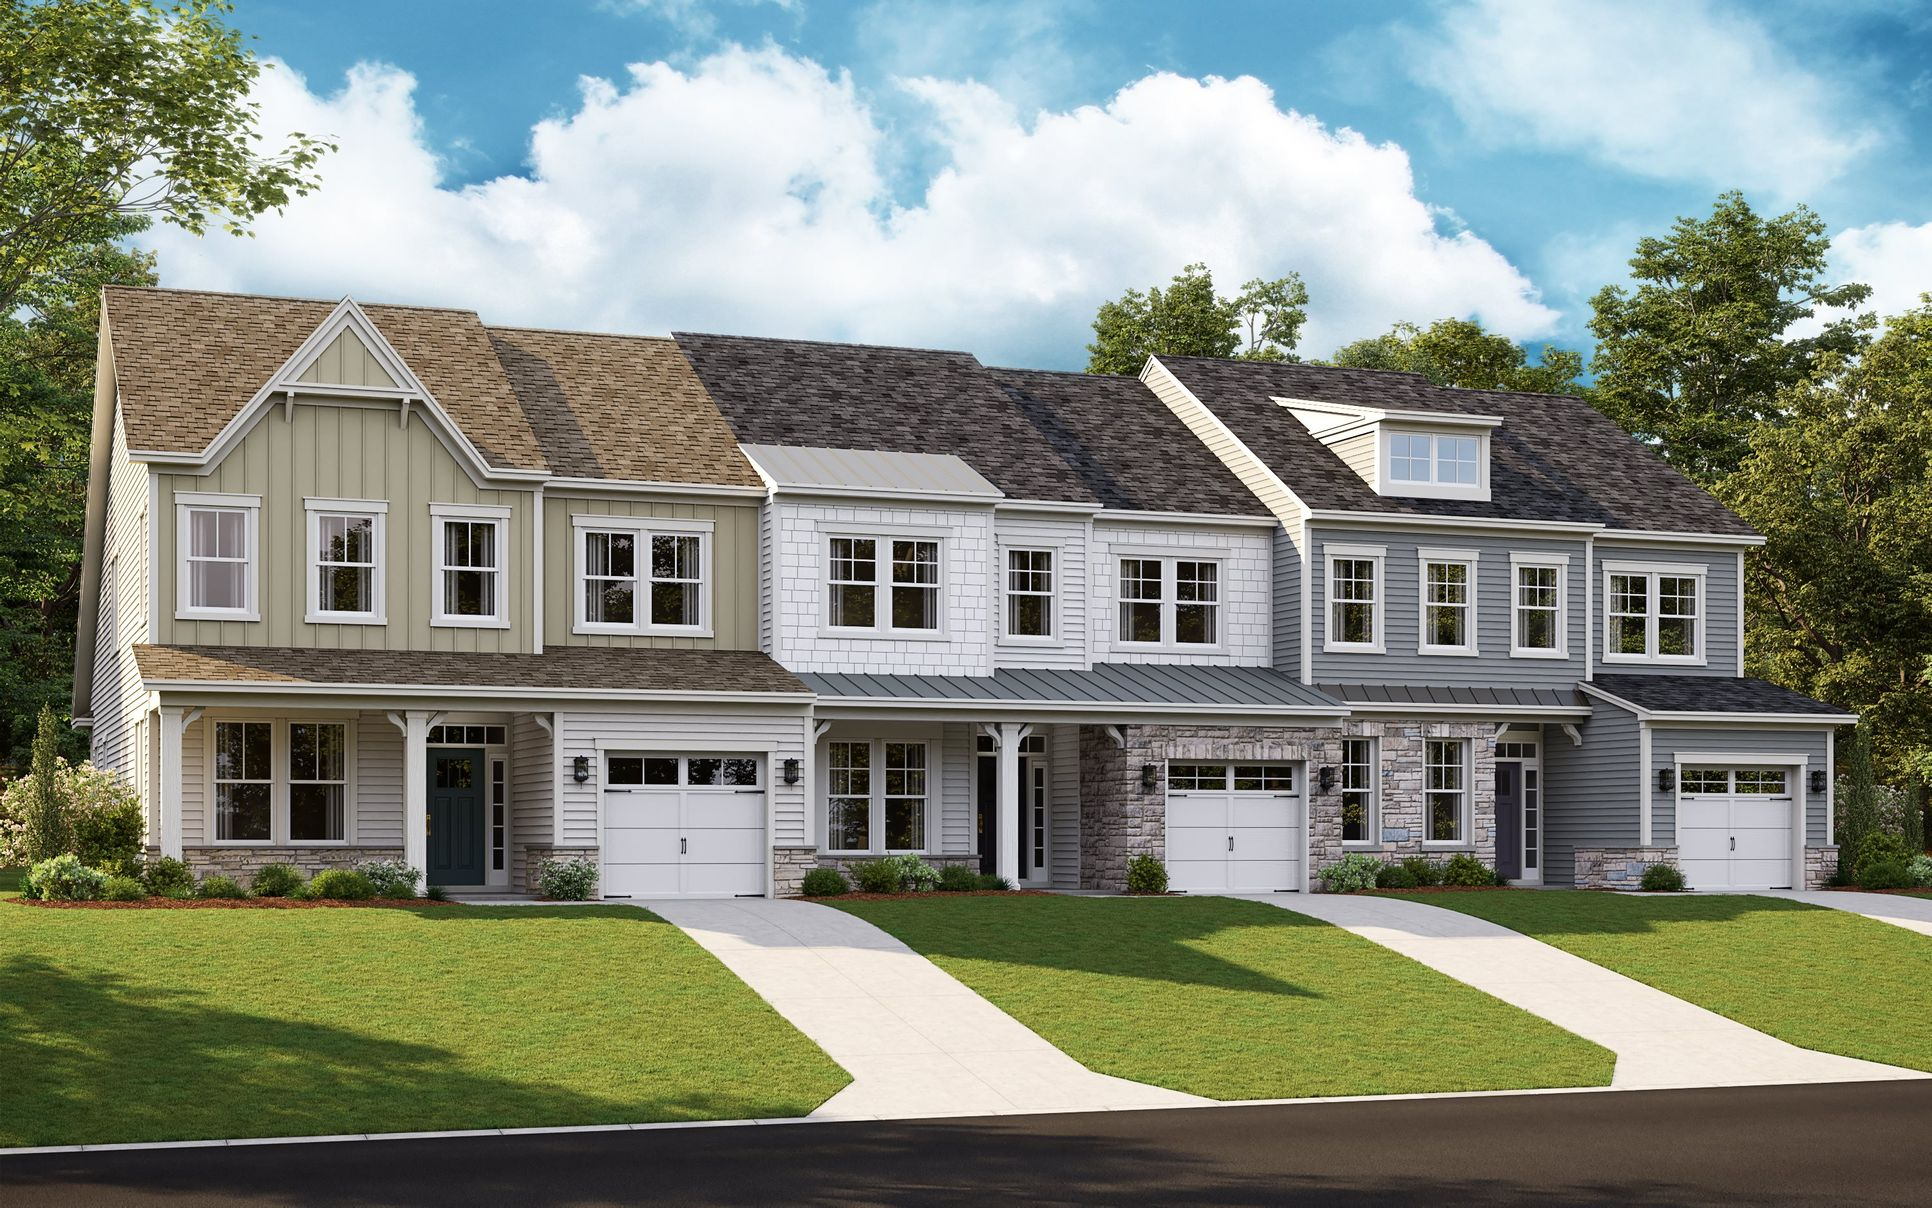 Row of townhomes in the Jennings plan at Amblebroo